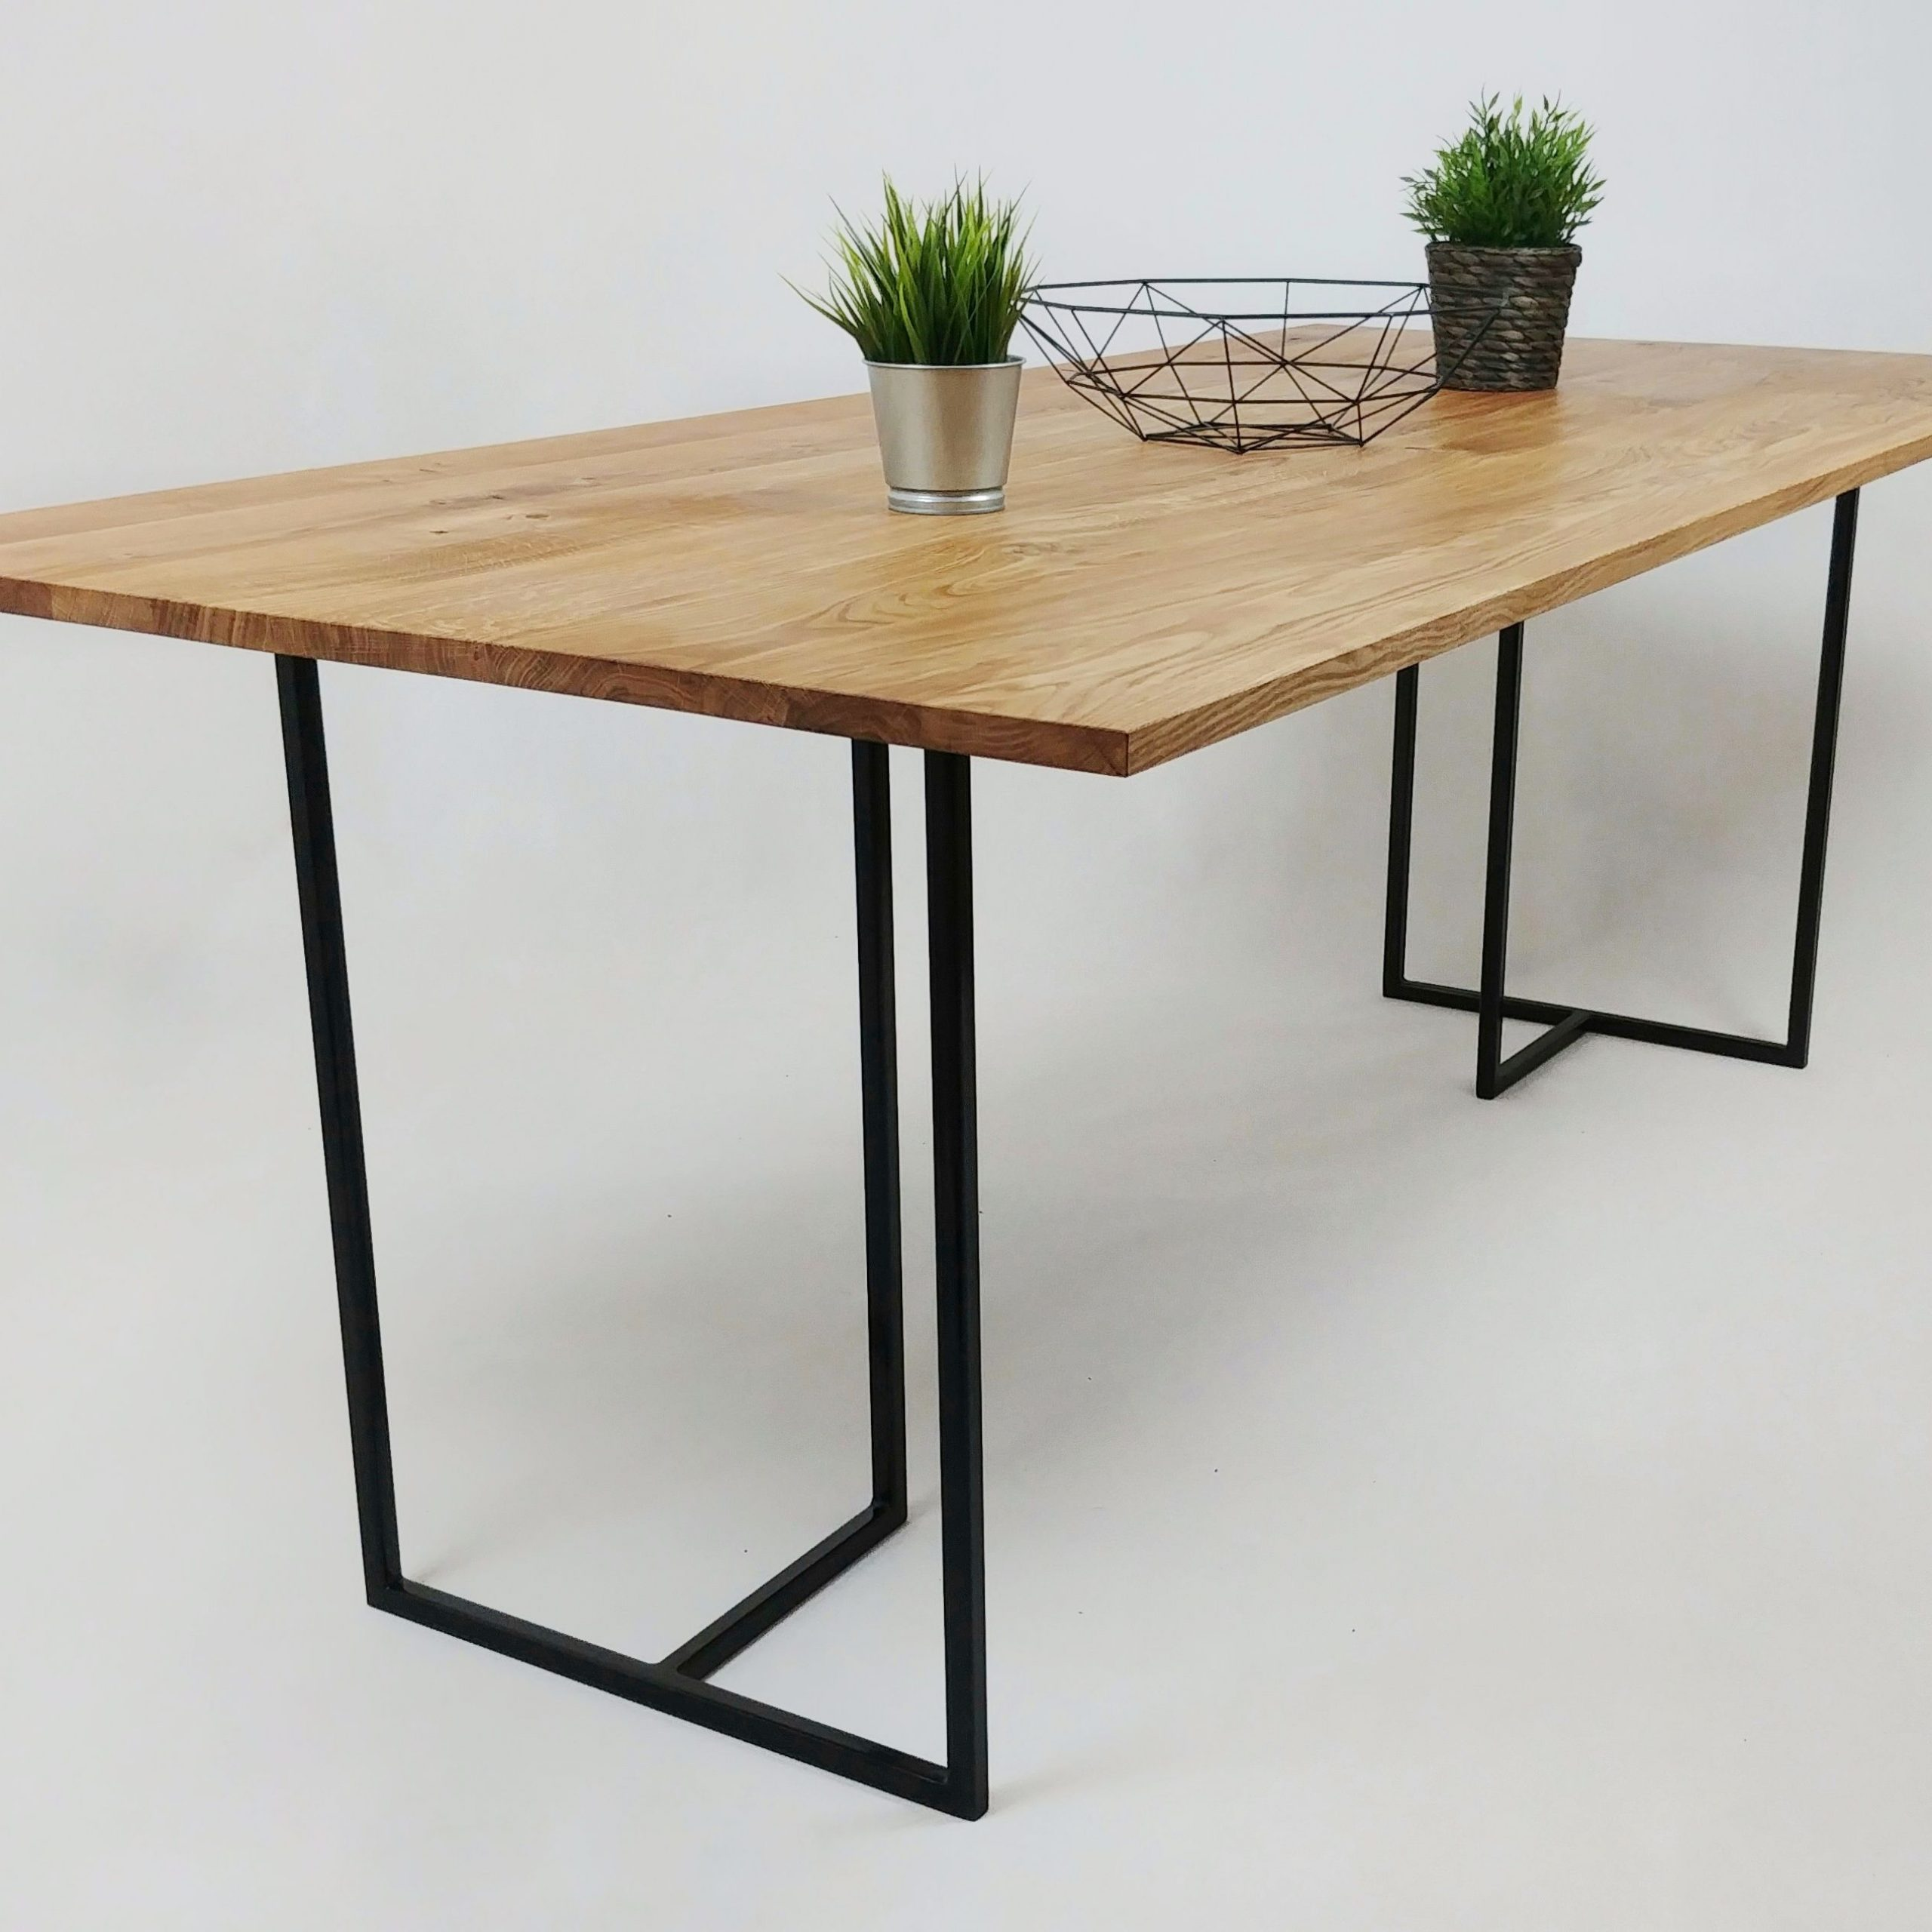 Newest Wood Top Dining Tables With Thin Oak Wood Top Dining Table With Black Steel Frame (Gallery 28 of 30)